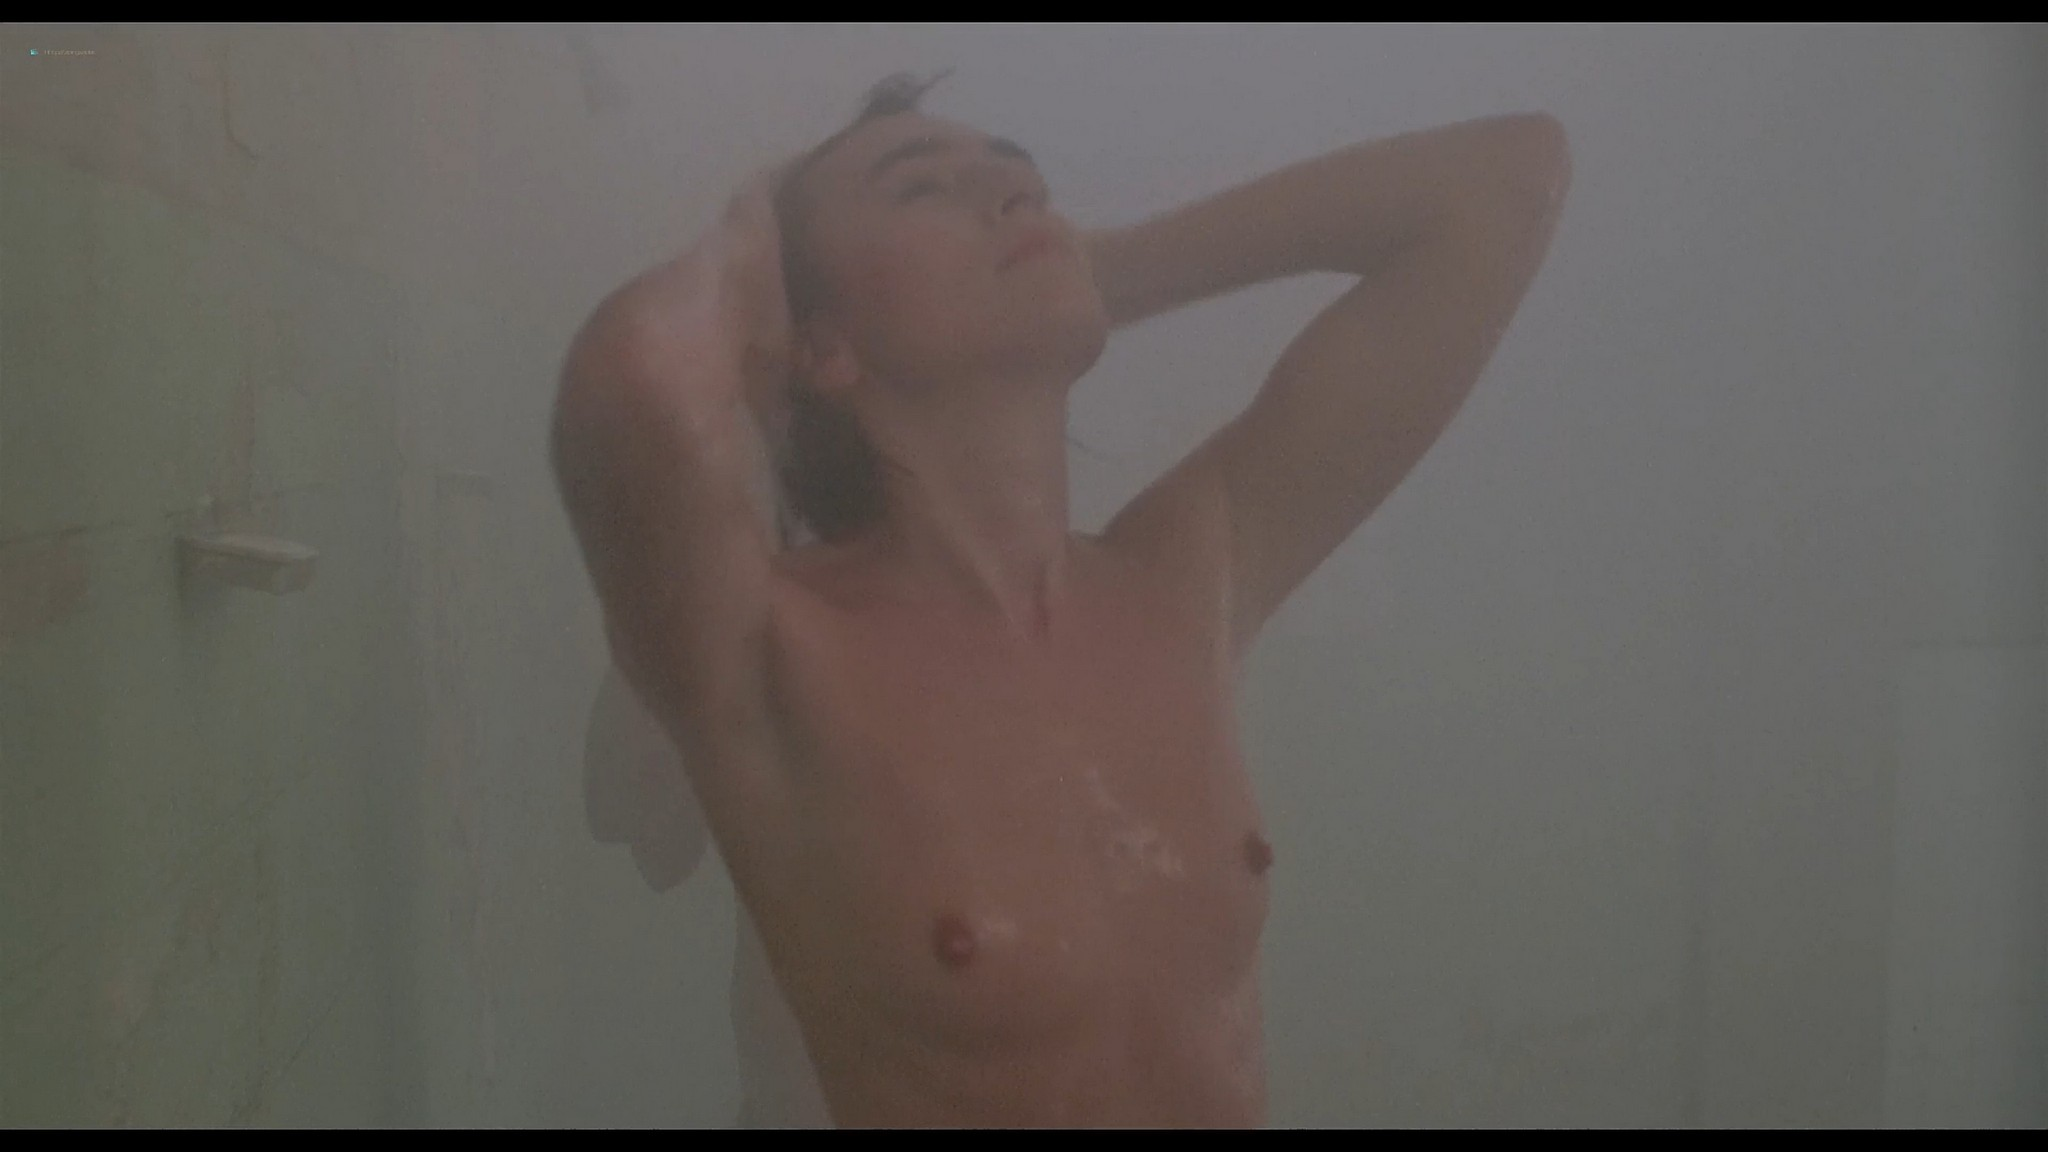 Shari Shattuck nude in shower Lisa London and others nude The Naked Cage 1986 HD 1080p BluRay 16